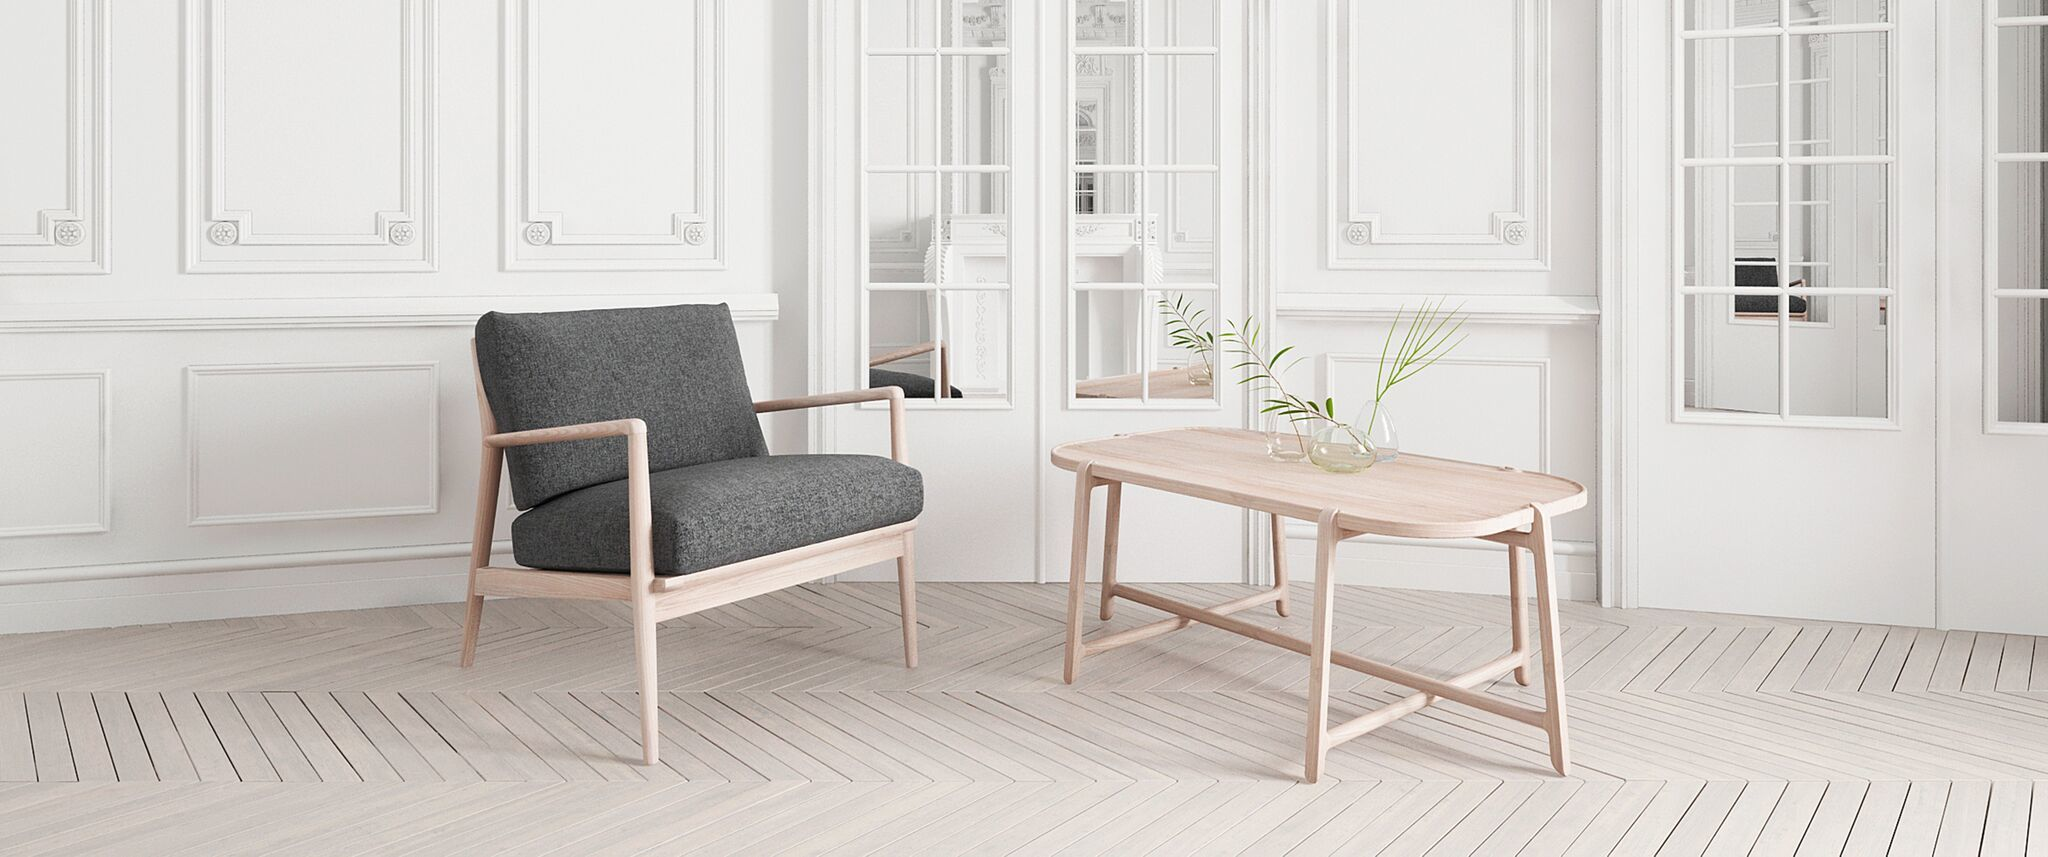 Best Danish Scandinavian Design Furniture Nofu Company